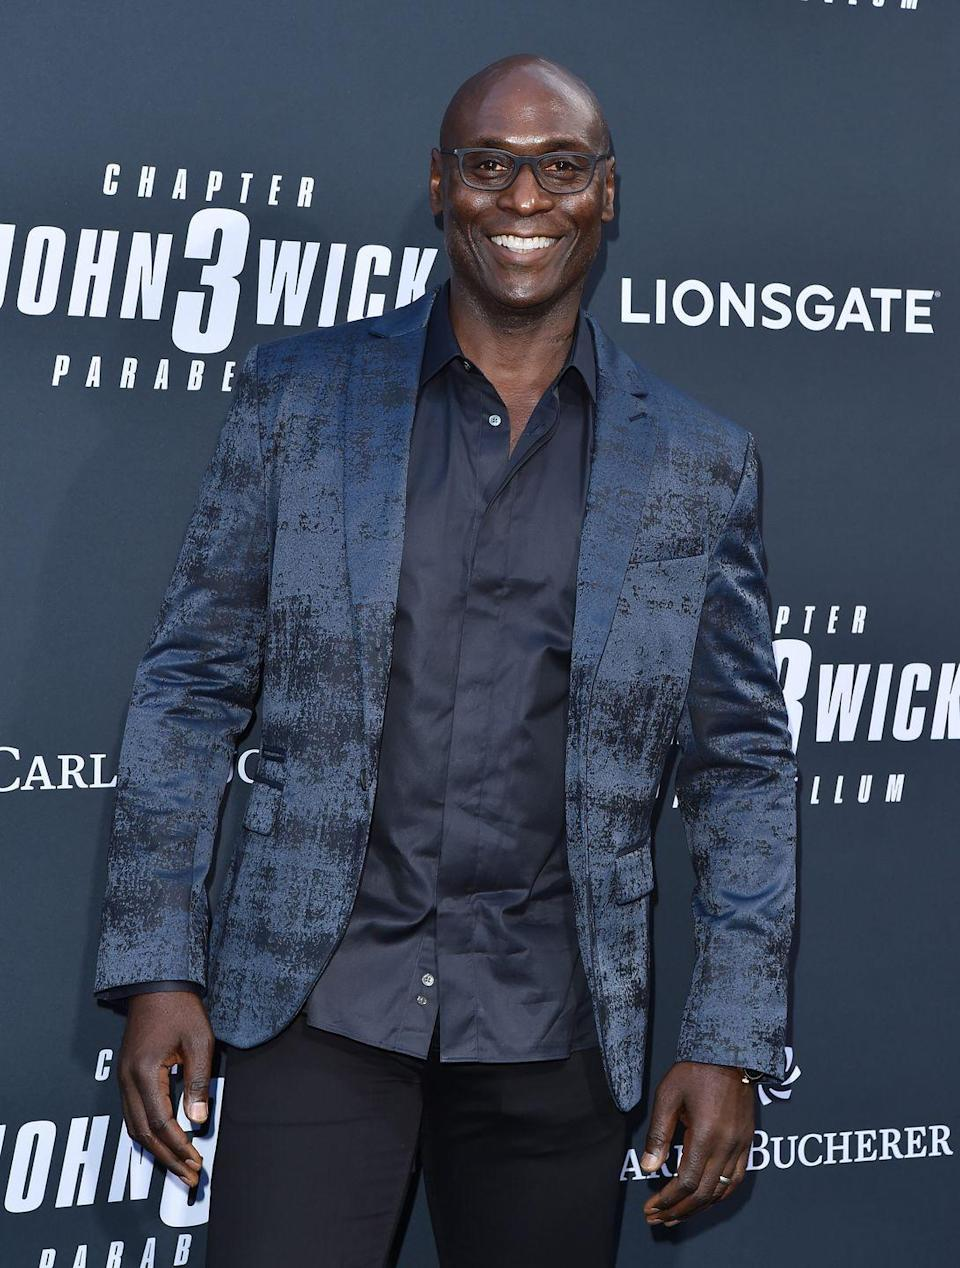 """<p>Following his success, Reddick appeared in <em>Lost</em>, <em>Fringe</em>, <em>American Horror Story</em>, and <em>Bosch</em>. He'll appear next in the upcoming <em>Angel Has Fallen</em> with Gerard Butler and <em>Godzilla vs. Kong</em>. </p><p>He's also appeared on the big screen work in the <em>John Wick </em>franchise as the titular hero's loyal hotel manager, Charon, which he told <em><a href=""""https://www.slashfilm.com/lance-reddick-interview-john-wick-chapter-3-parabellum/"""" rel=""""nofollow noopener"""" target=""""_blank"""" data-ylk=""""slk:SlashFilm"""" class=""""link rapid-noclick-resp"""">SlashFilm</a> </em>gave him a chance to flex his action muscles<em>:</em> """"I love doing action and it's so funny because I've played so many cops, and I rarely get to shoot guns and fight people. <em>Fringe</em>, <em>Bosch</em>, <em>The Wire</em>…""""</p>"""